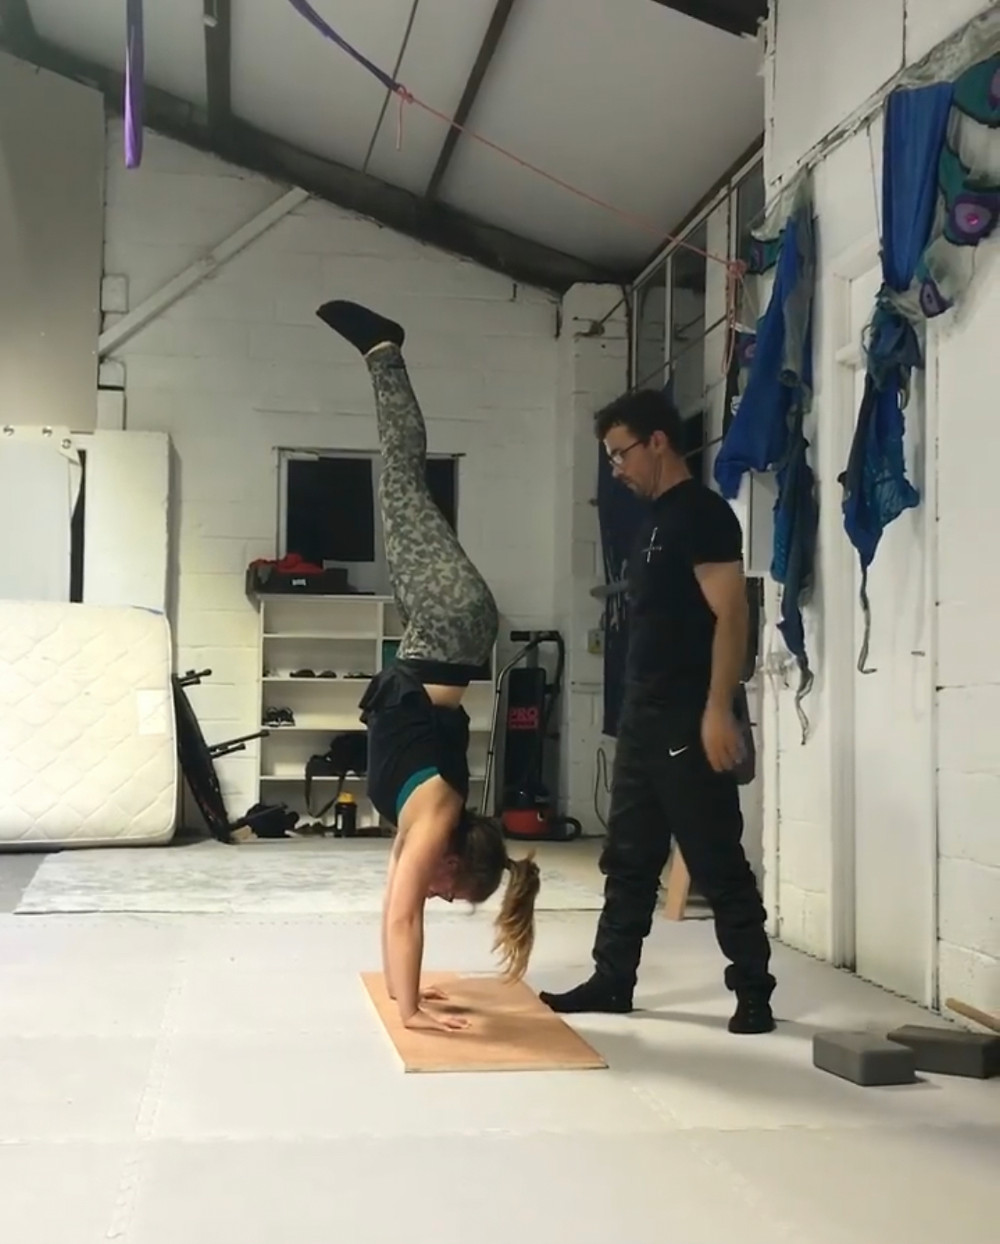 Heather Topf doing a handstand